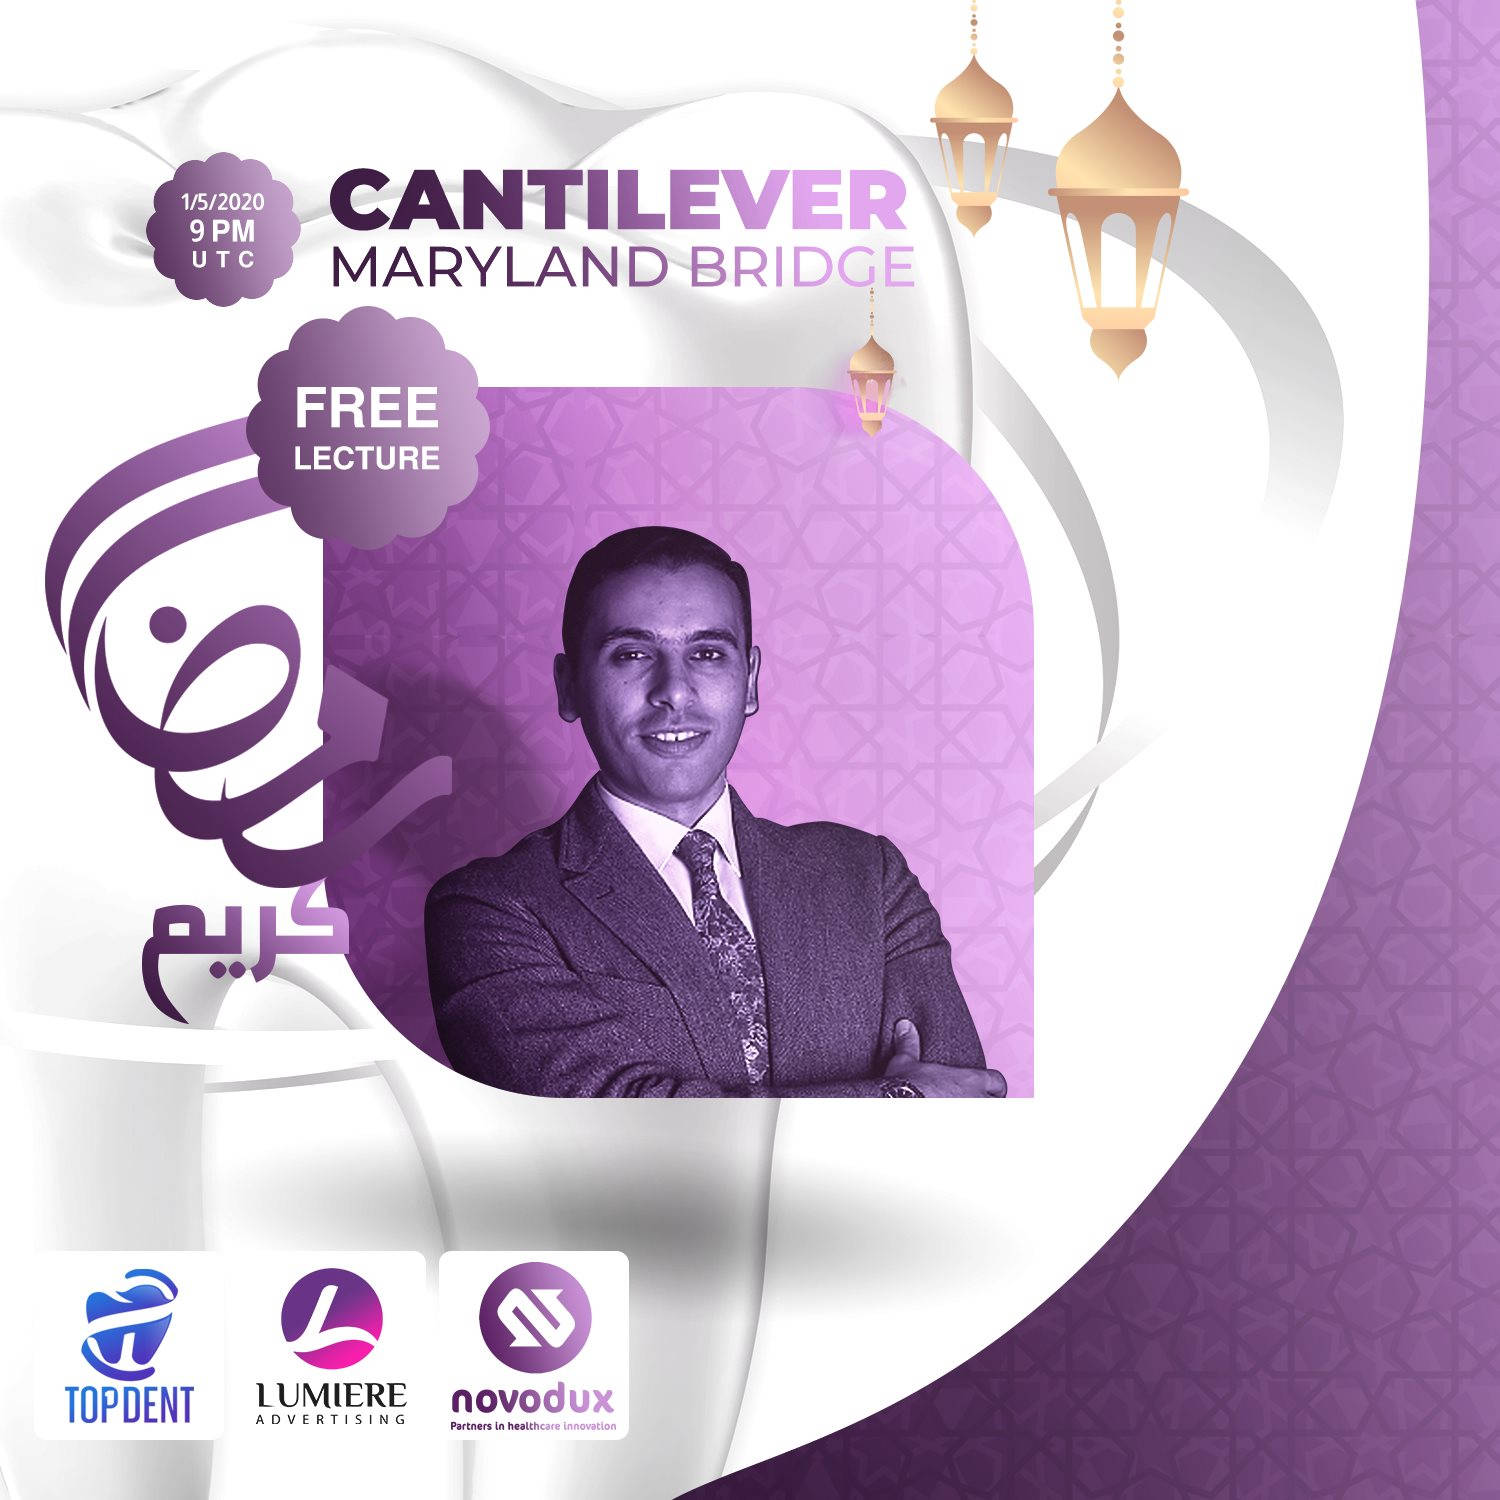 Cantilever Maryland Bridge - An Aesthetic Treatment for Missing Lateral Incisors